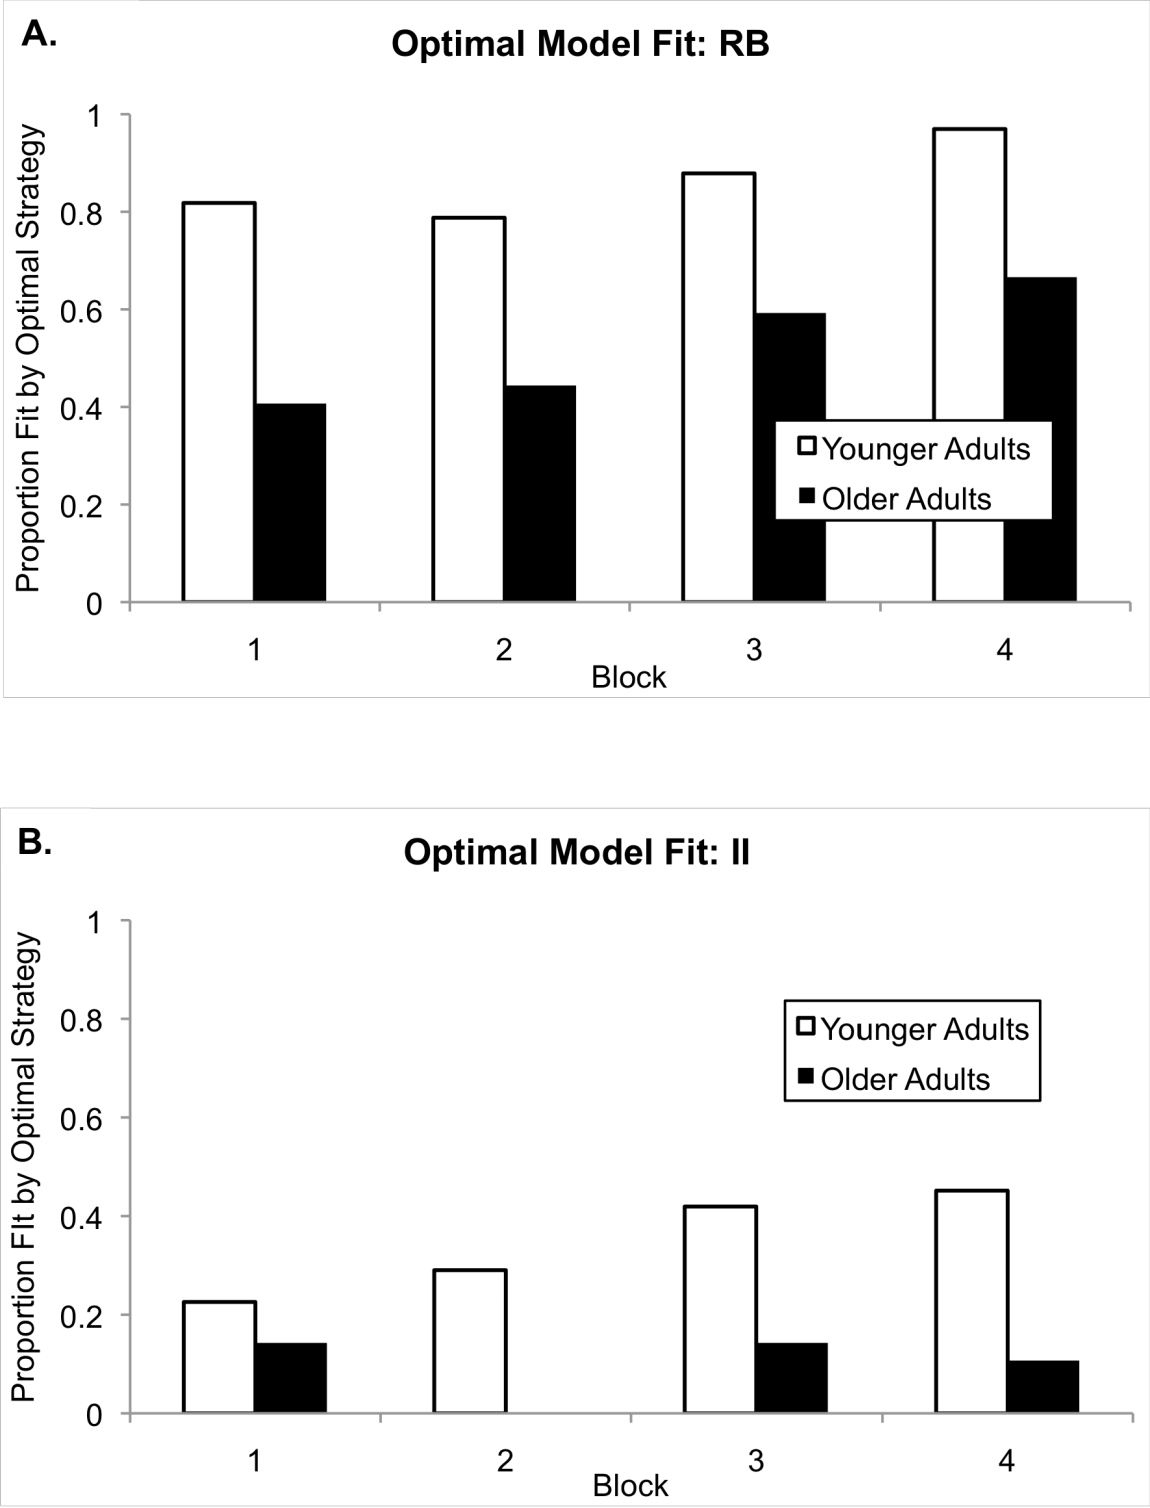 Figure 4.5: The proportion of participants, by block, whose data were fit by the optimal model. (A) shows data from participants who learned the RB category set and (B) shows the data from participants who learned the II category set.